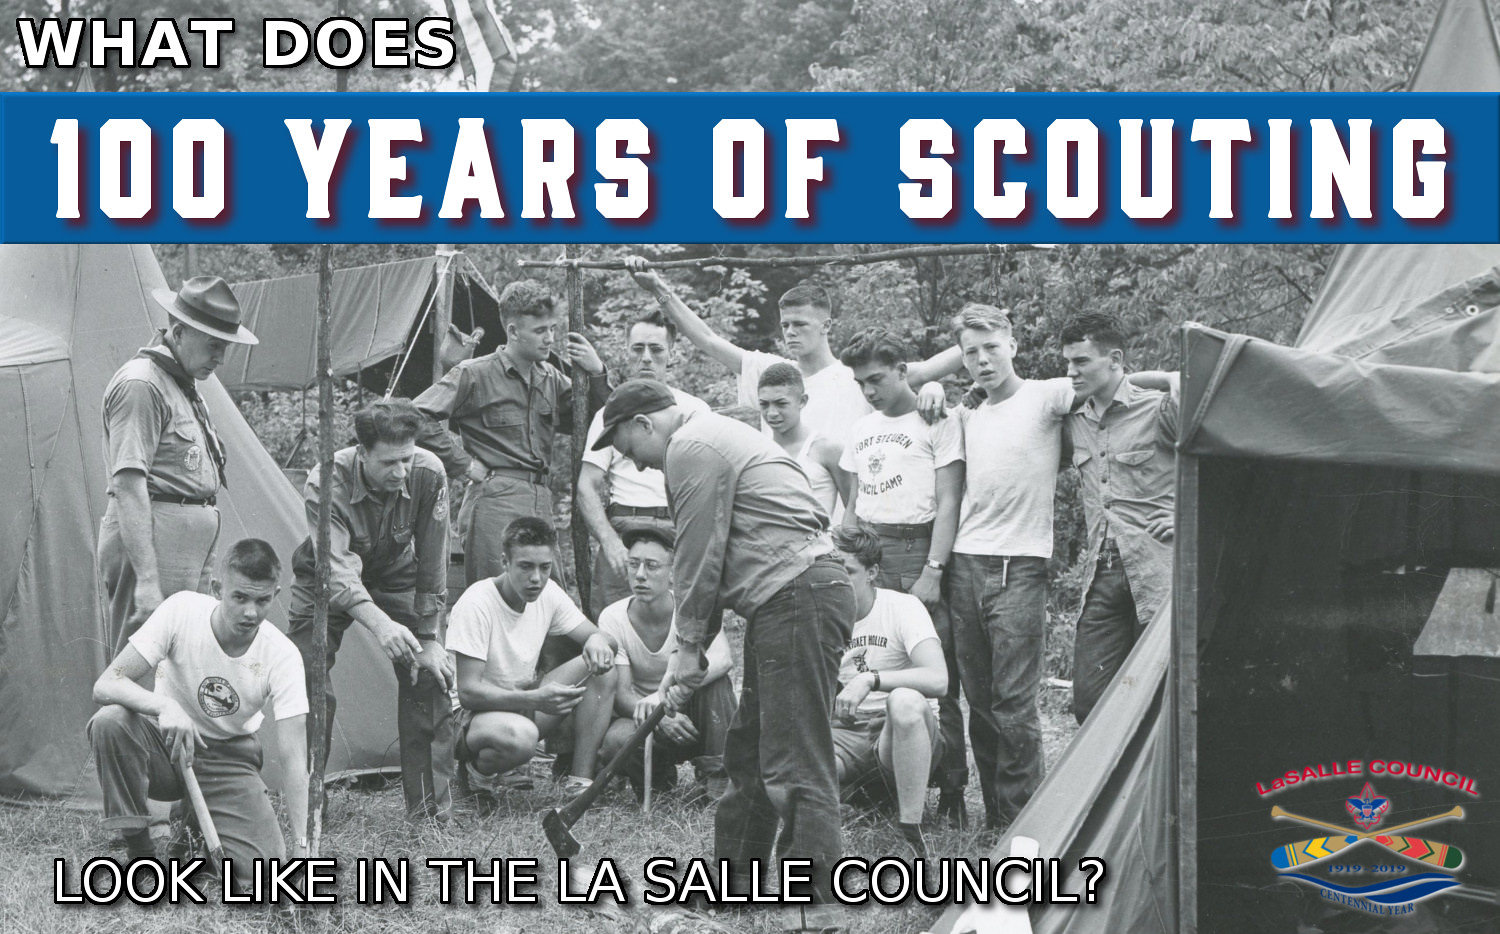 100 Years if Scouting